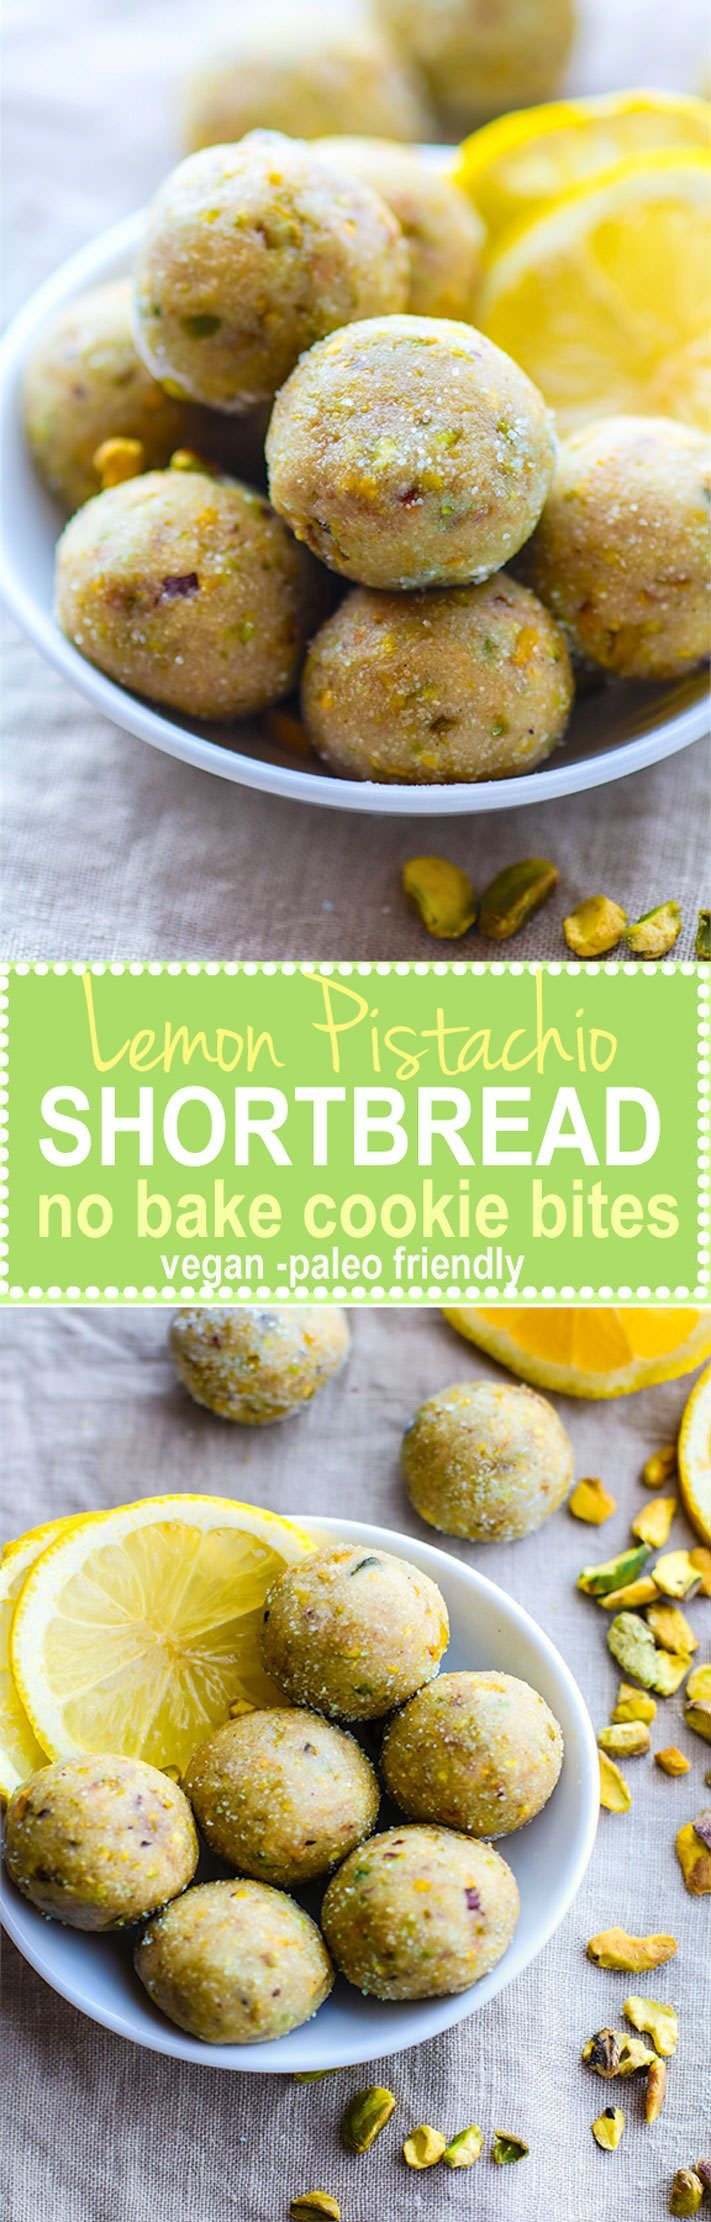 Bake Lemon Pistachio Shortbread Cookie Bites! Vegan and Paleo friendly Bites that taste just like Shortbread Cookie but are actually good for you! Super easy to make, refreshing, light, and naturally gluten free!